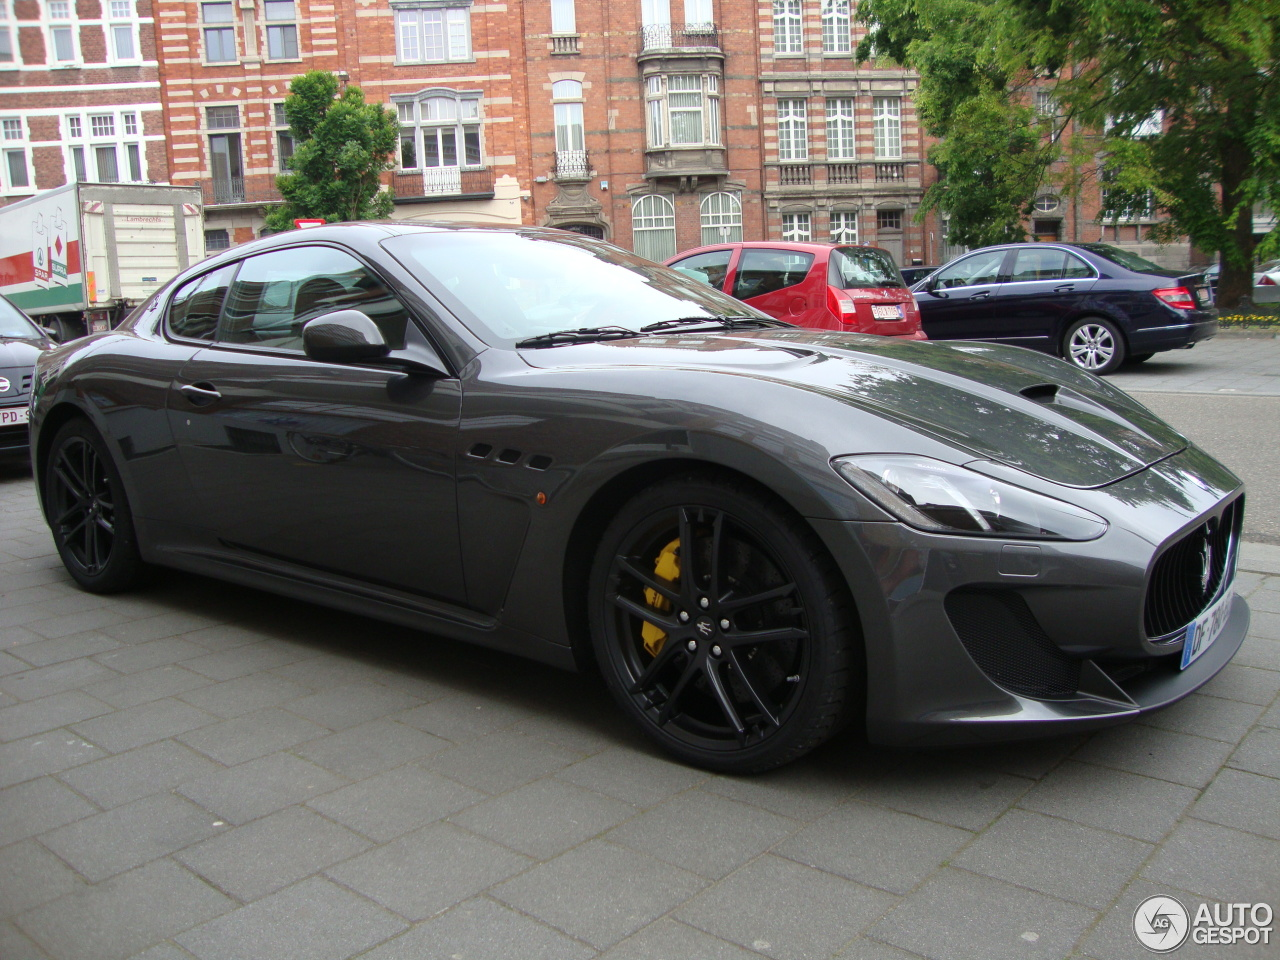 maserati granturismo mc stradale 2013 1 may 2014 autogespot. Black Bedroom Furniture Sets. Home Design Ideas